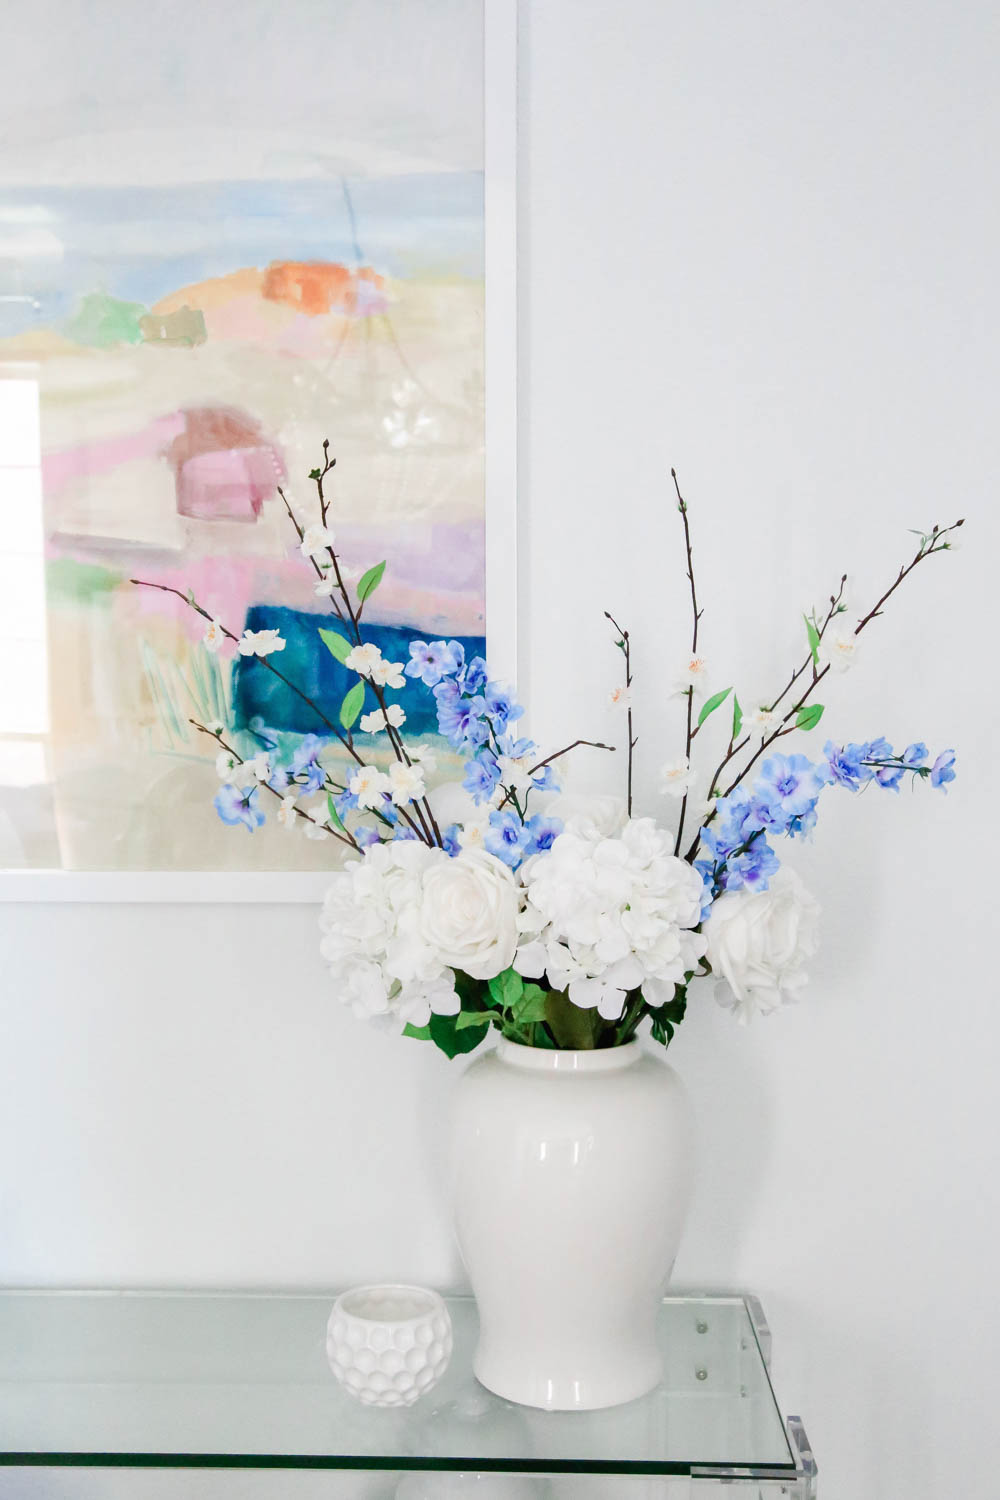 Simple faux flowers in blue and white add a summery touch to this entryway table. #entryway #summerdecor #ABlissfulNest